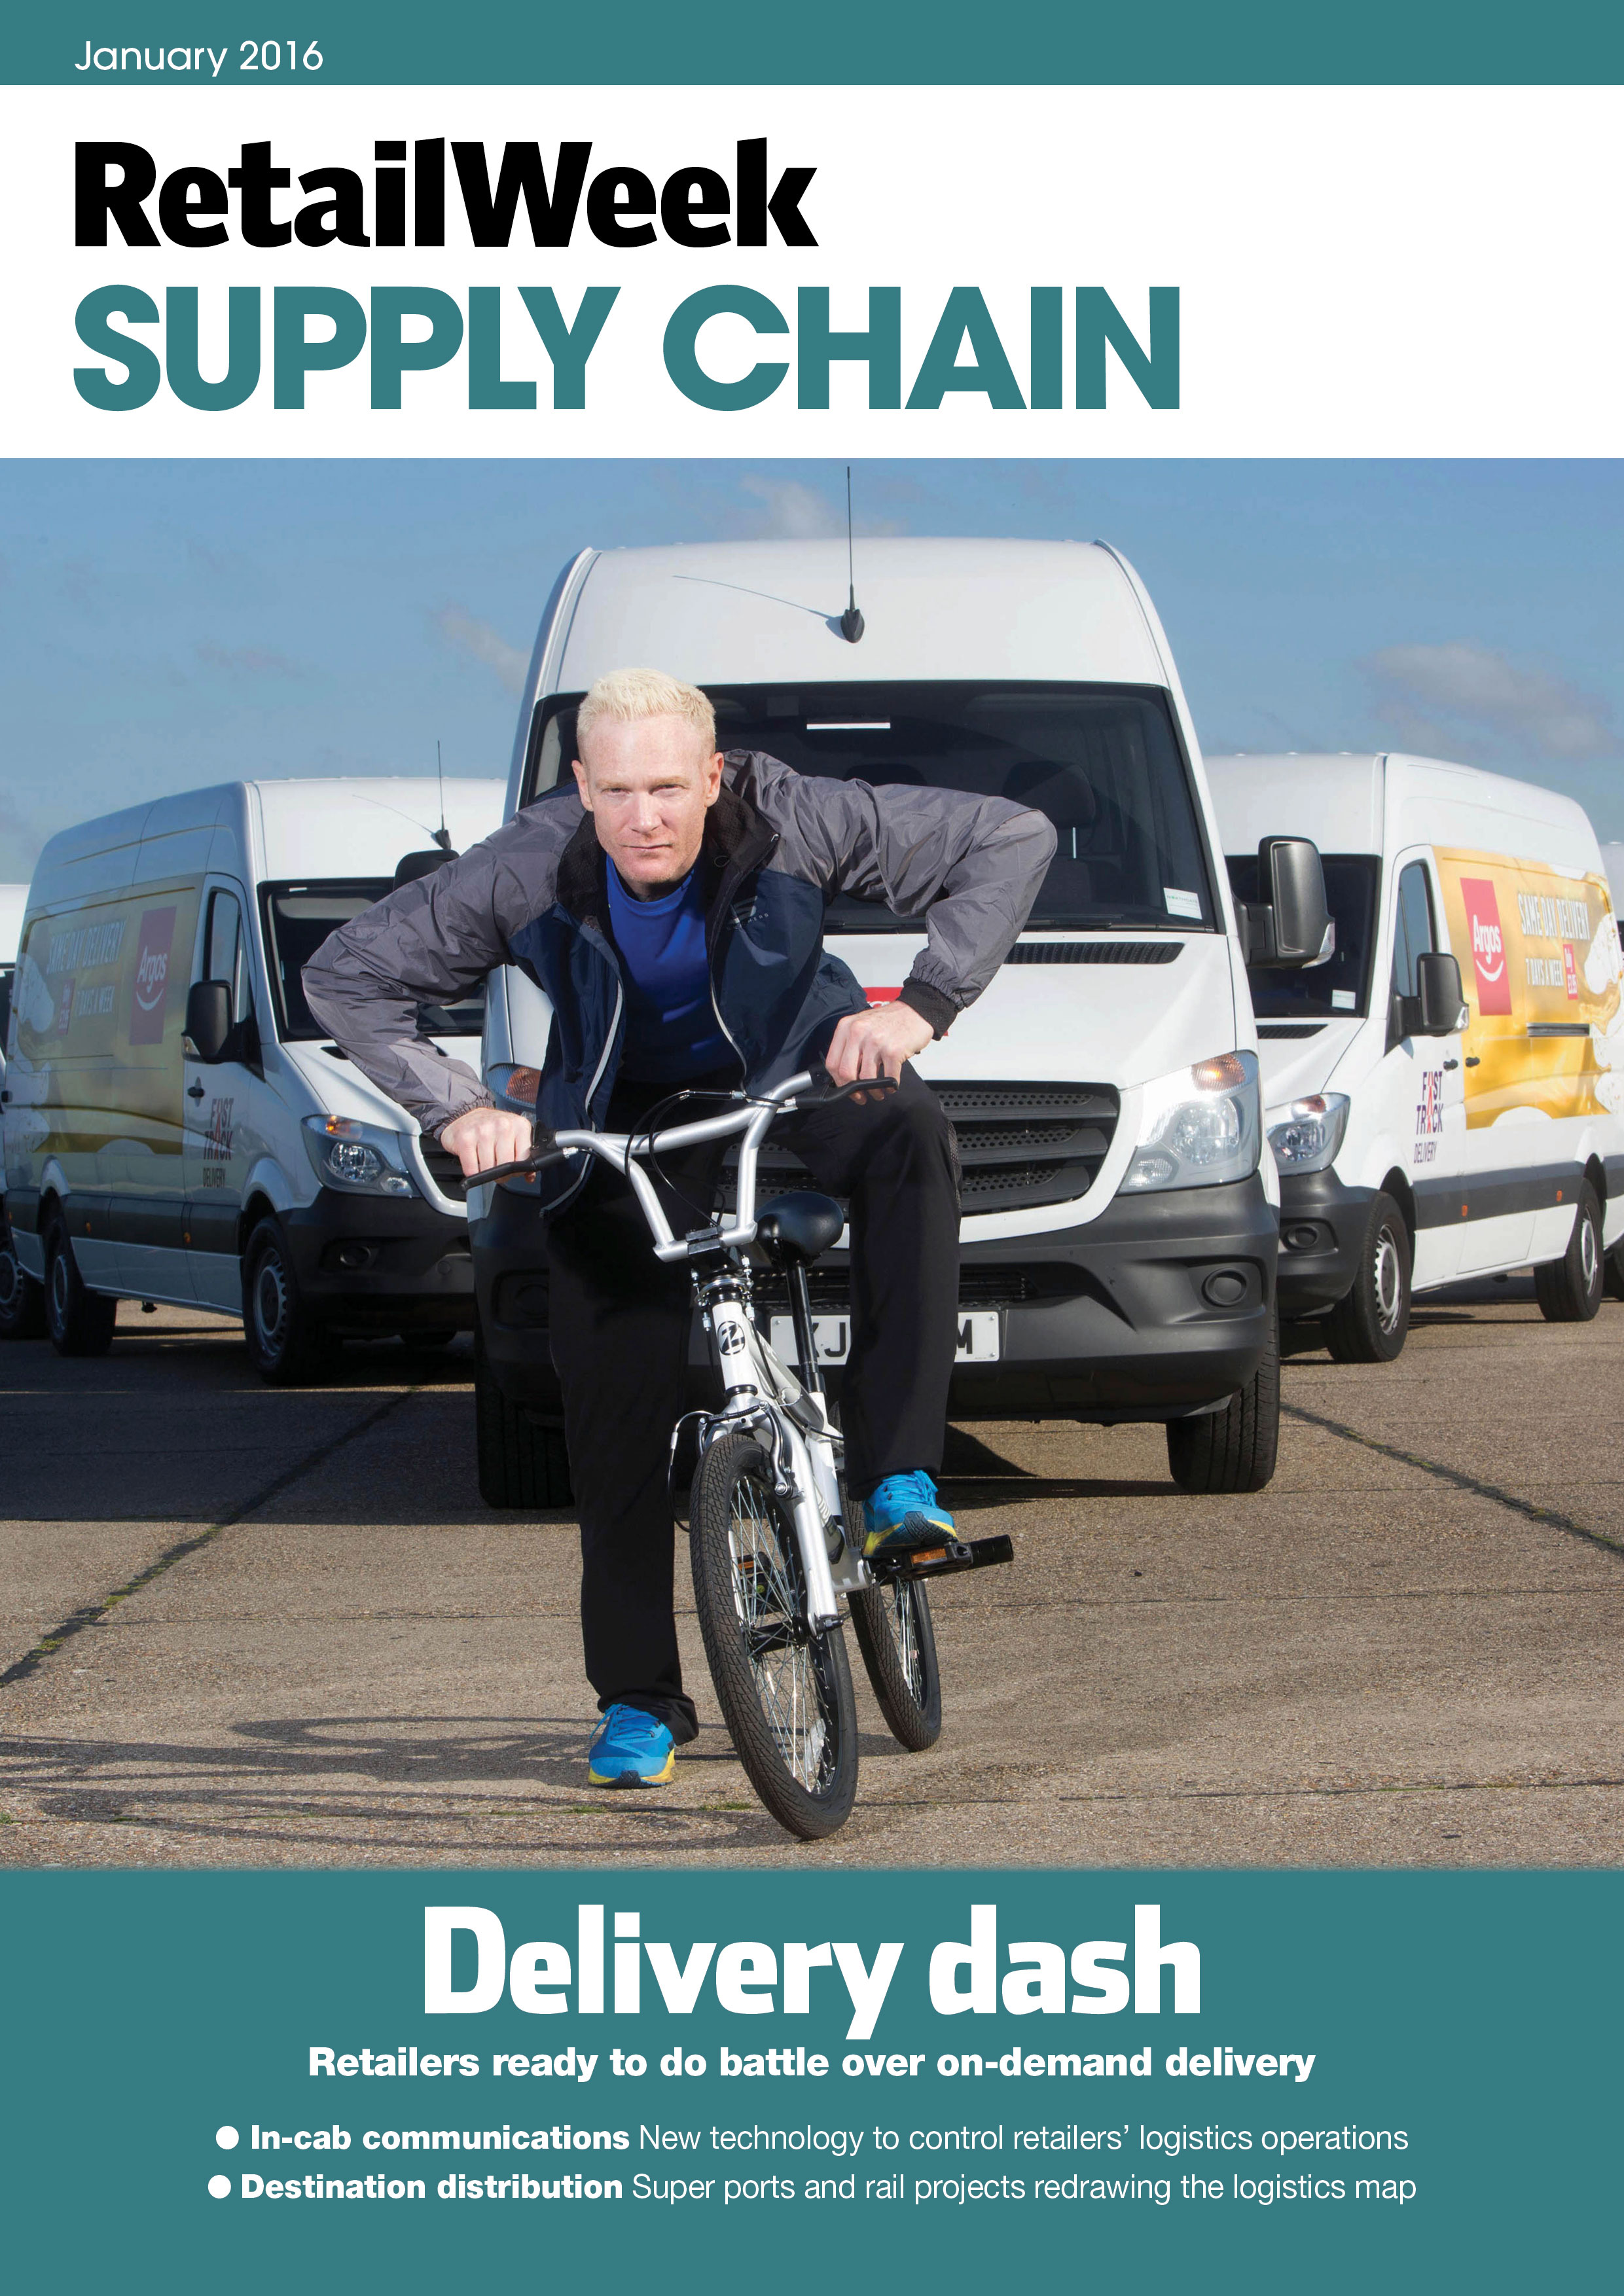 Retail Week Supply Chain January 2016